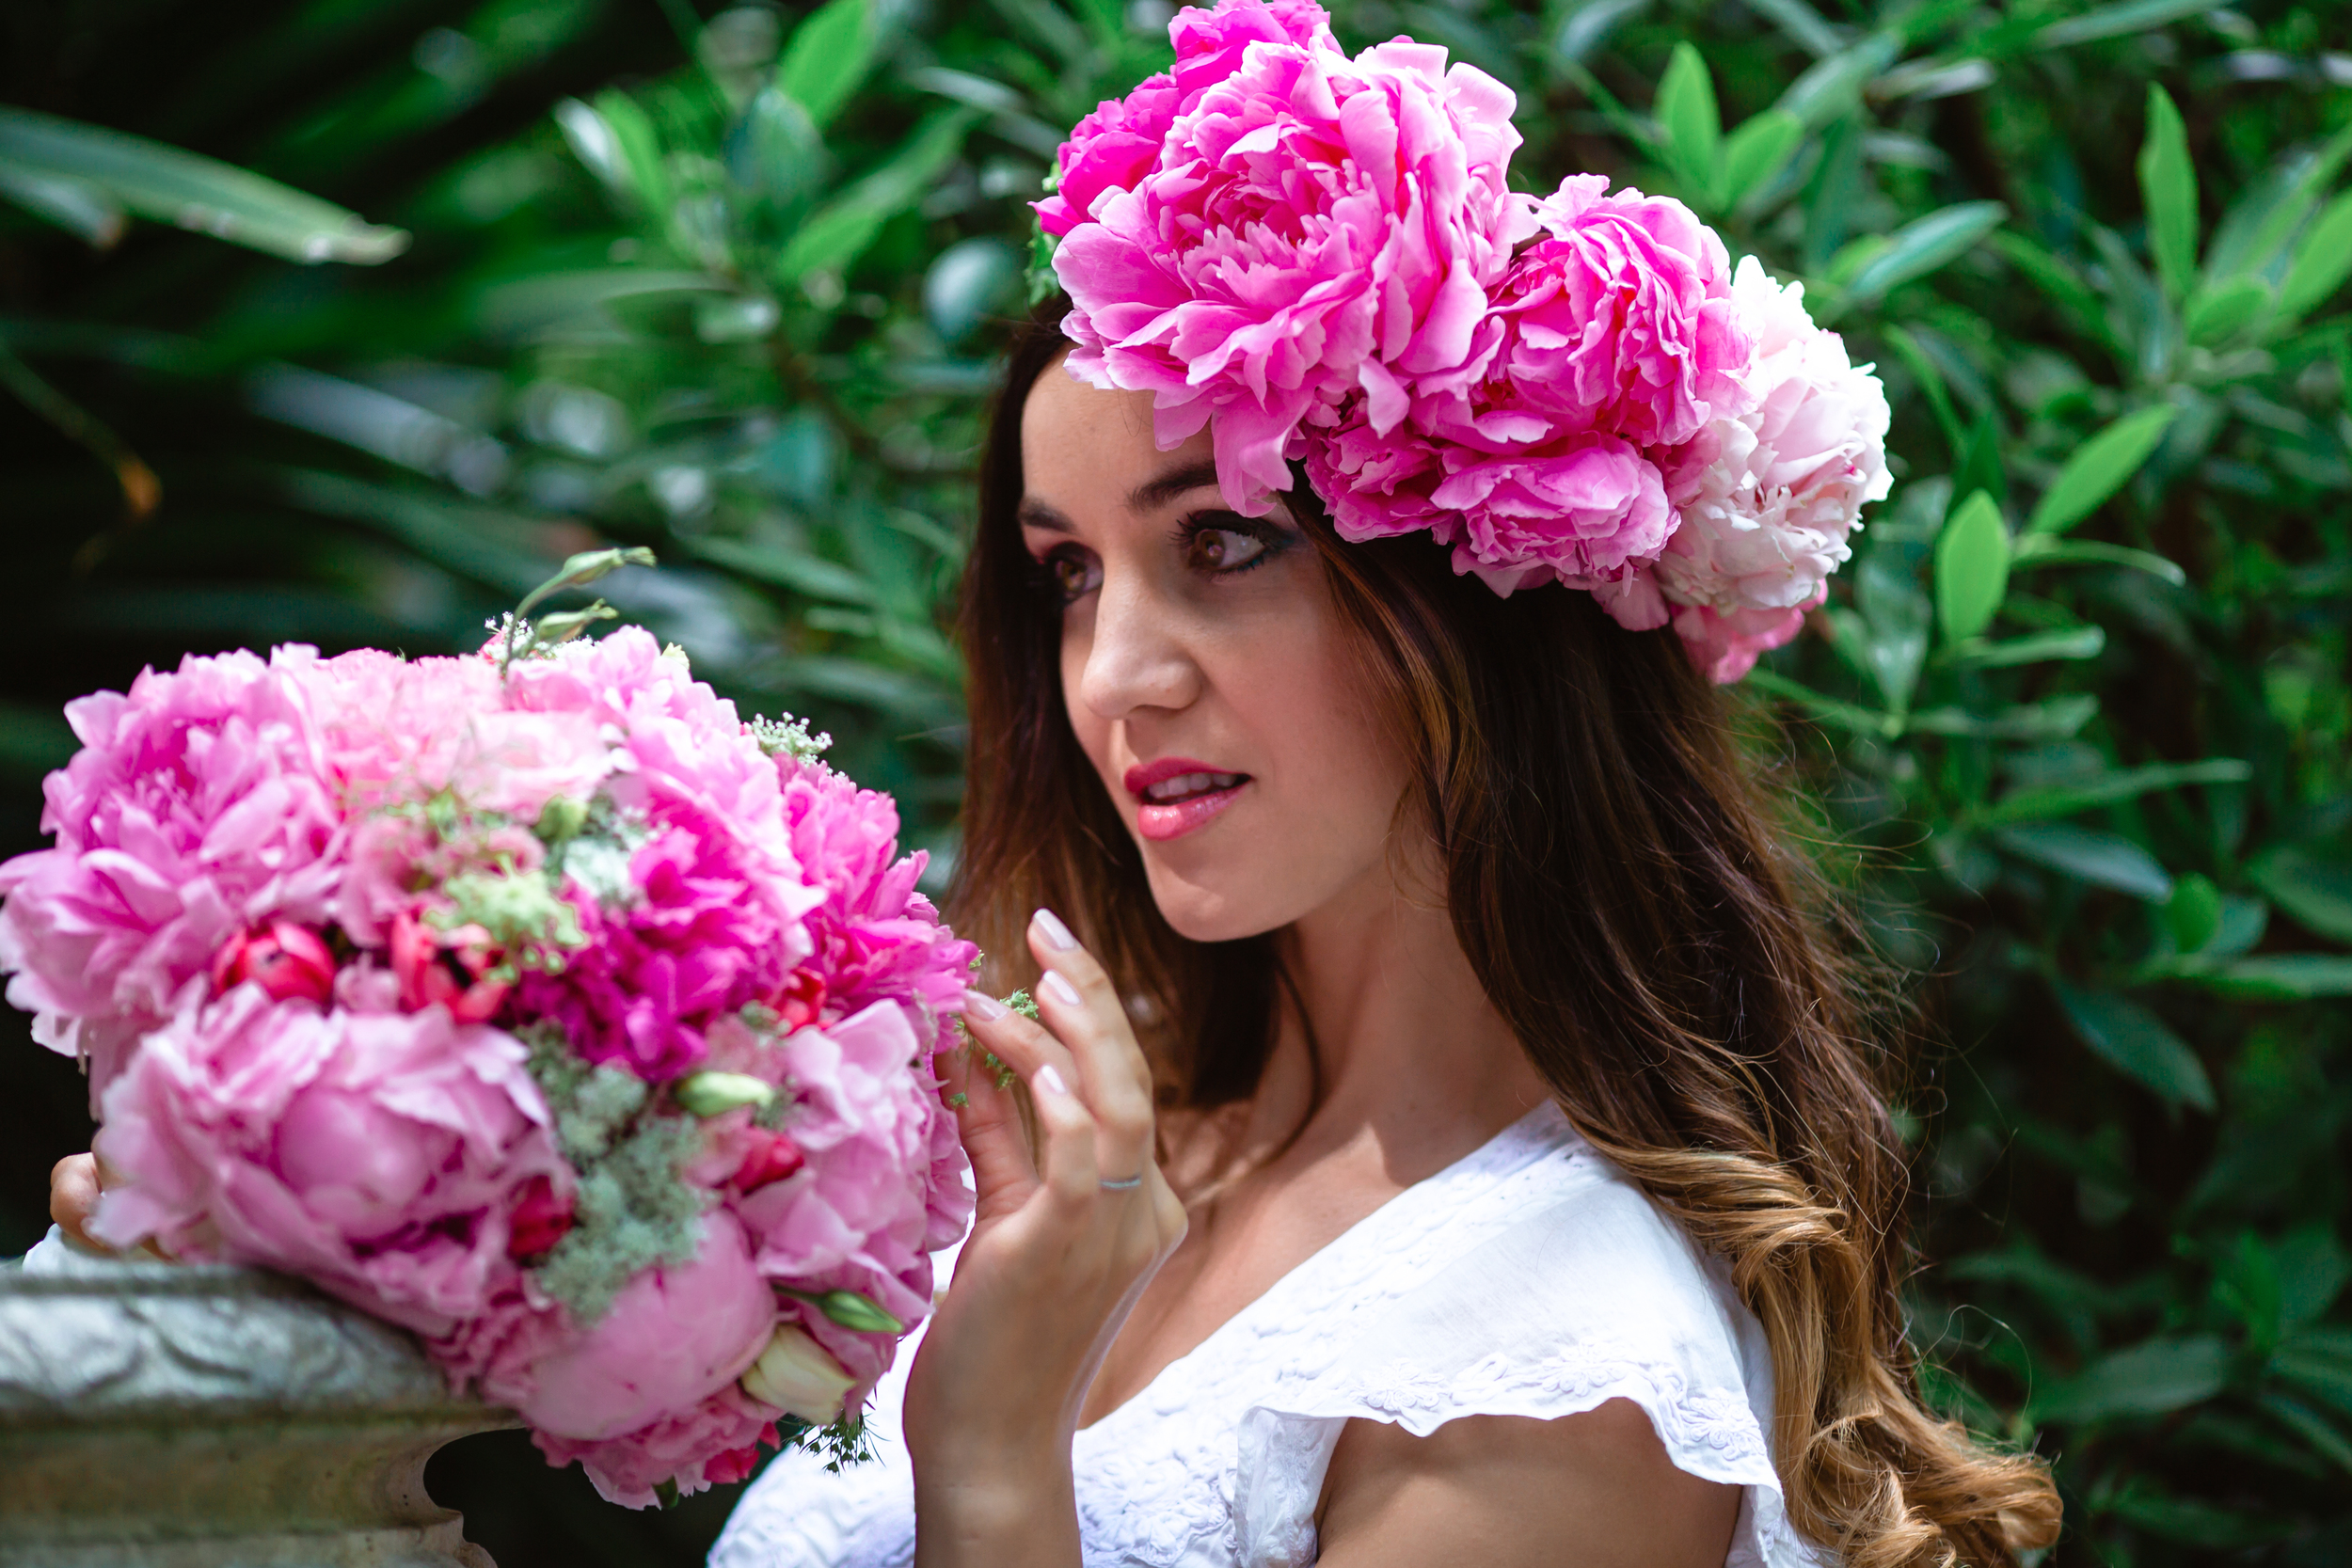 Garden Wedding - Floral Crown and bridal bouquet 4.jpg